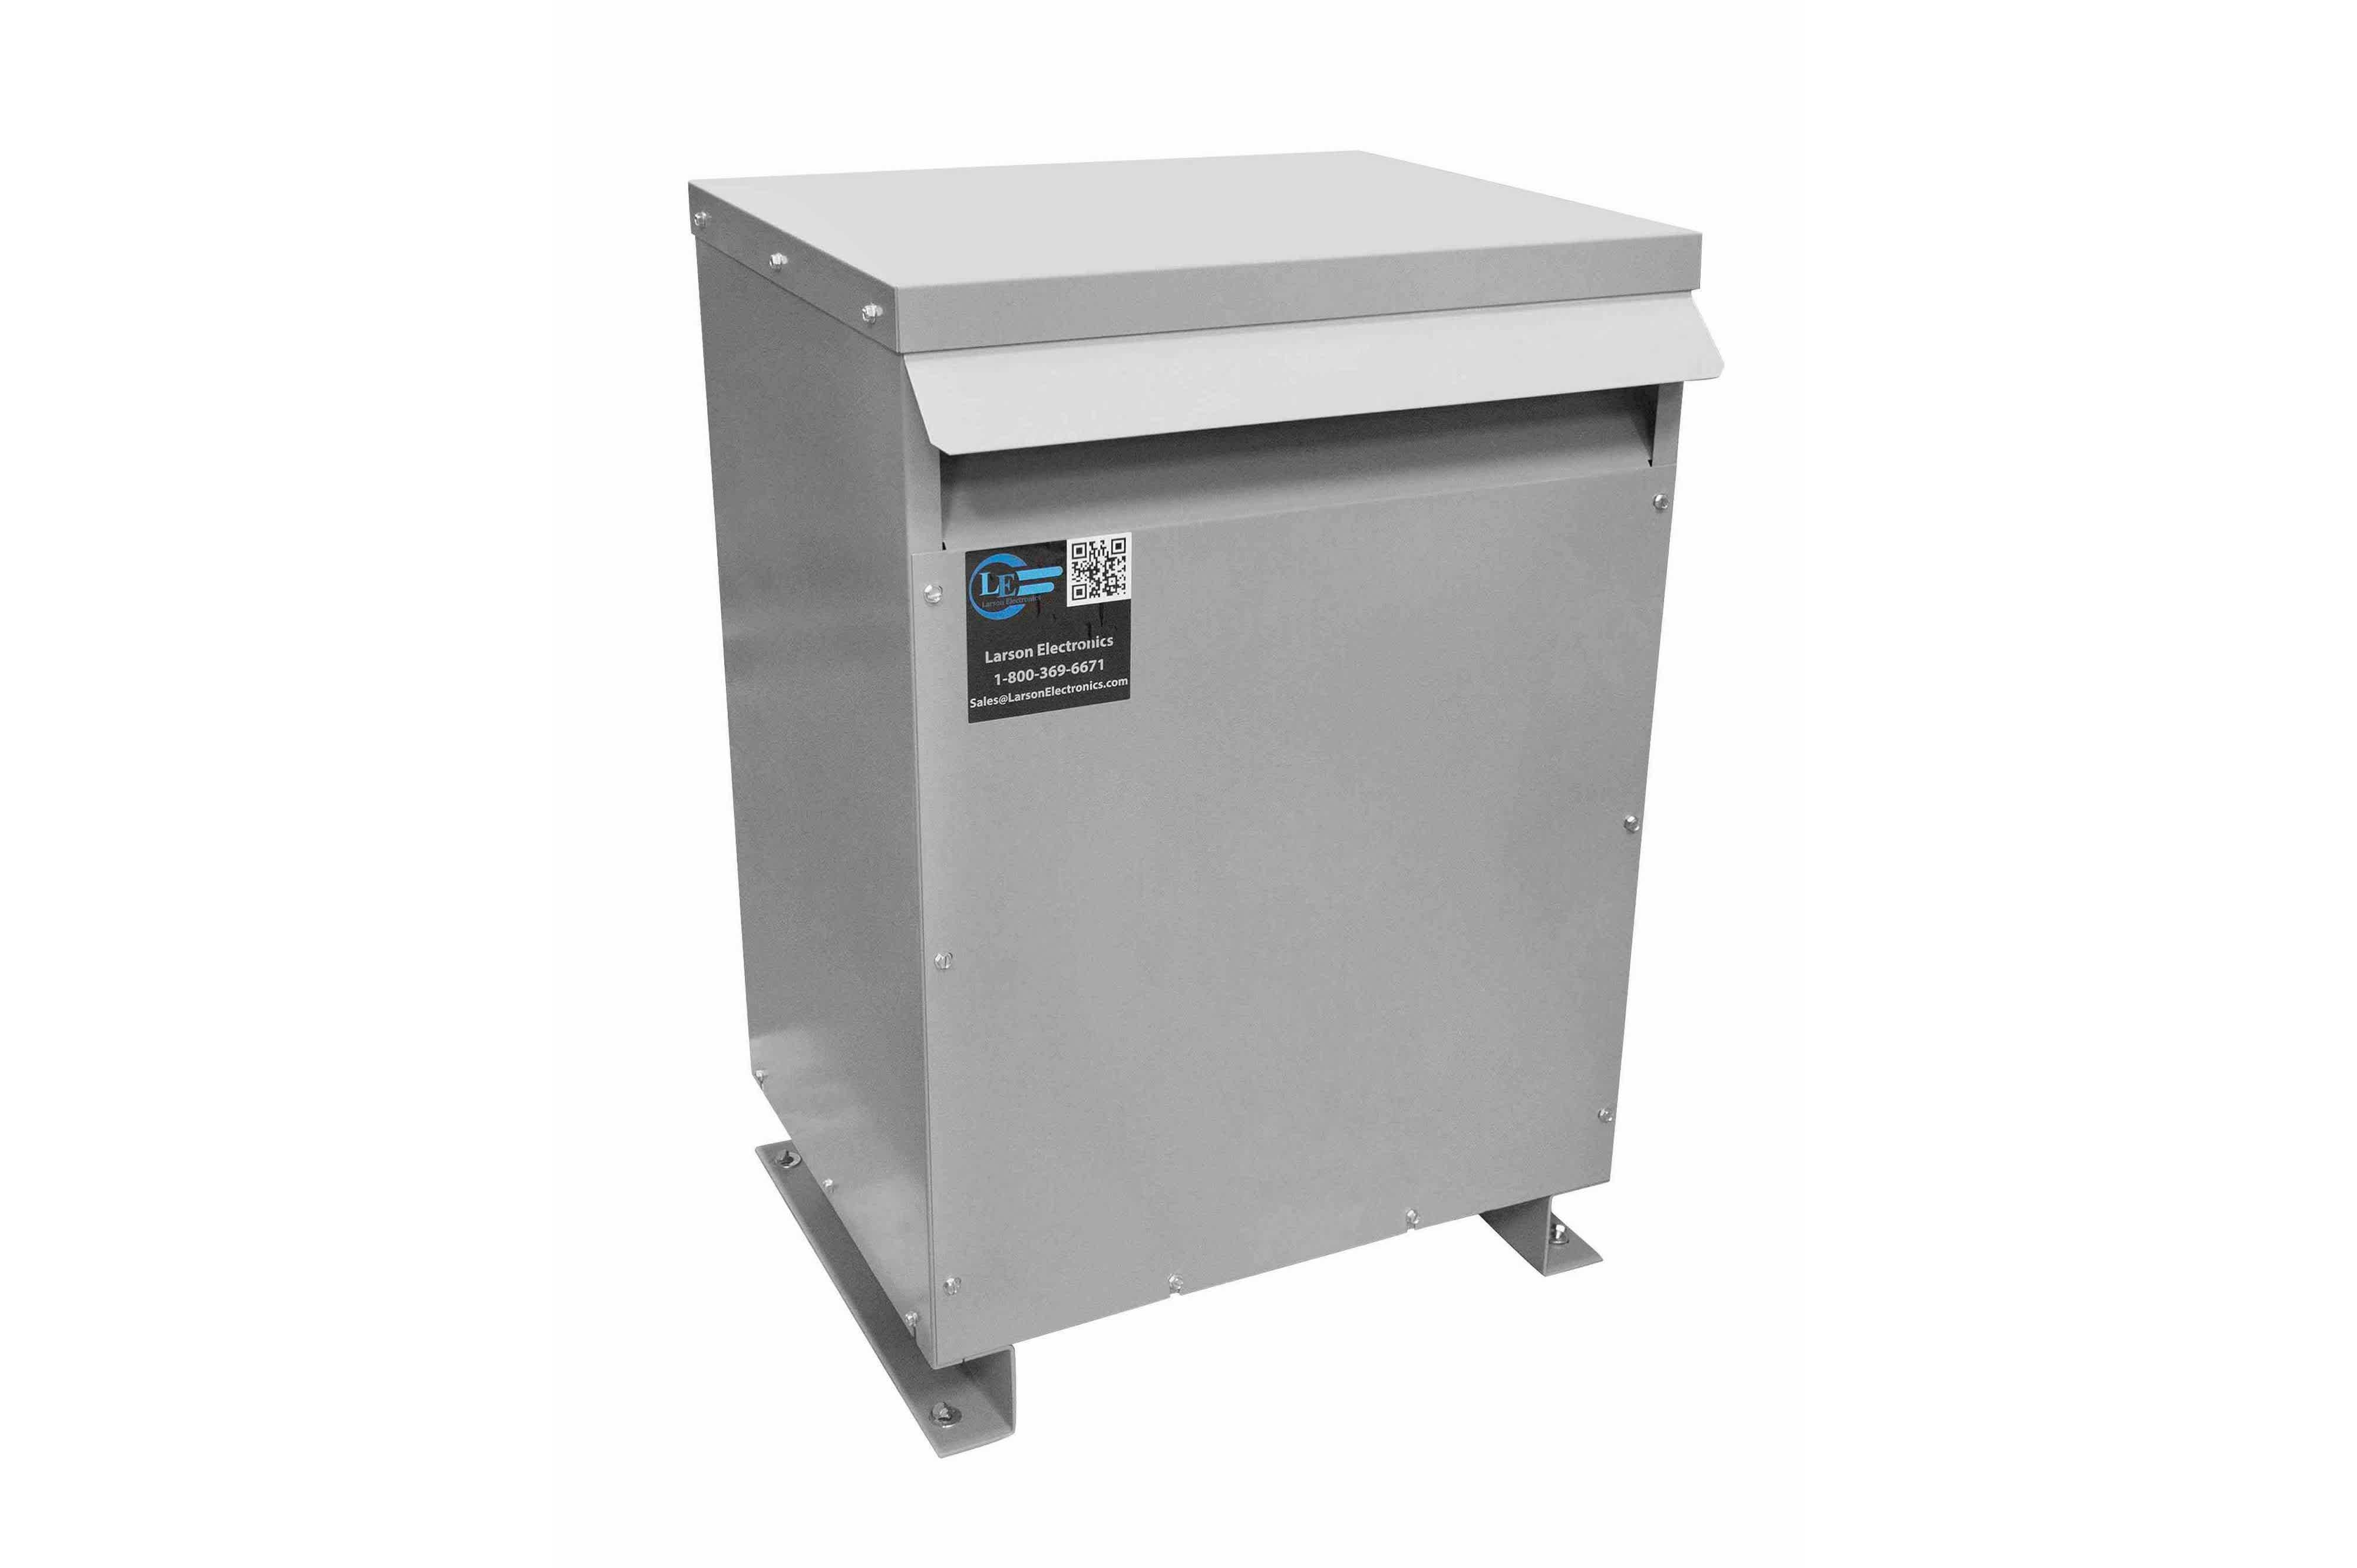 1000 kVA 3PH Isolation Transformer, 480V Wye Primary, 415V Delta Secondary, N3R, Ventilated, 60 Hz